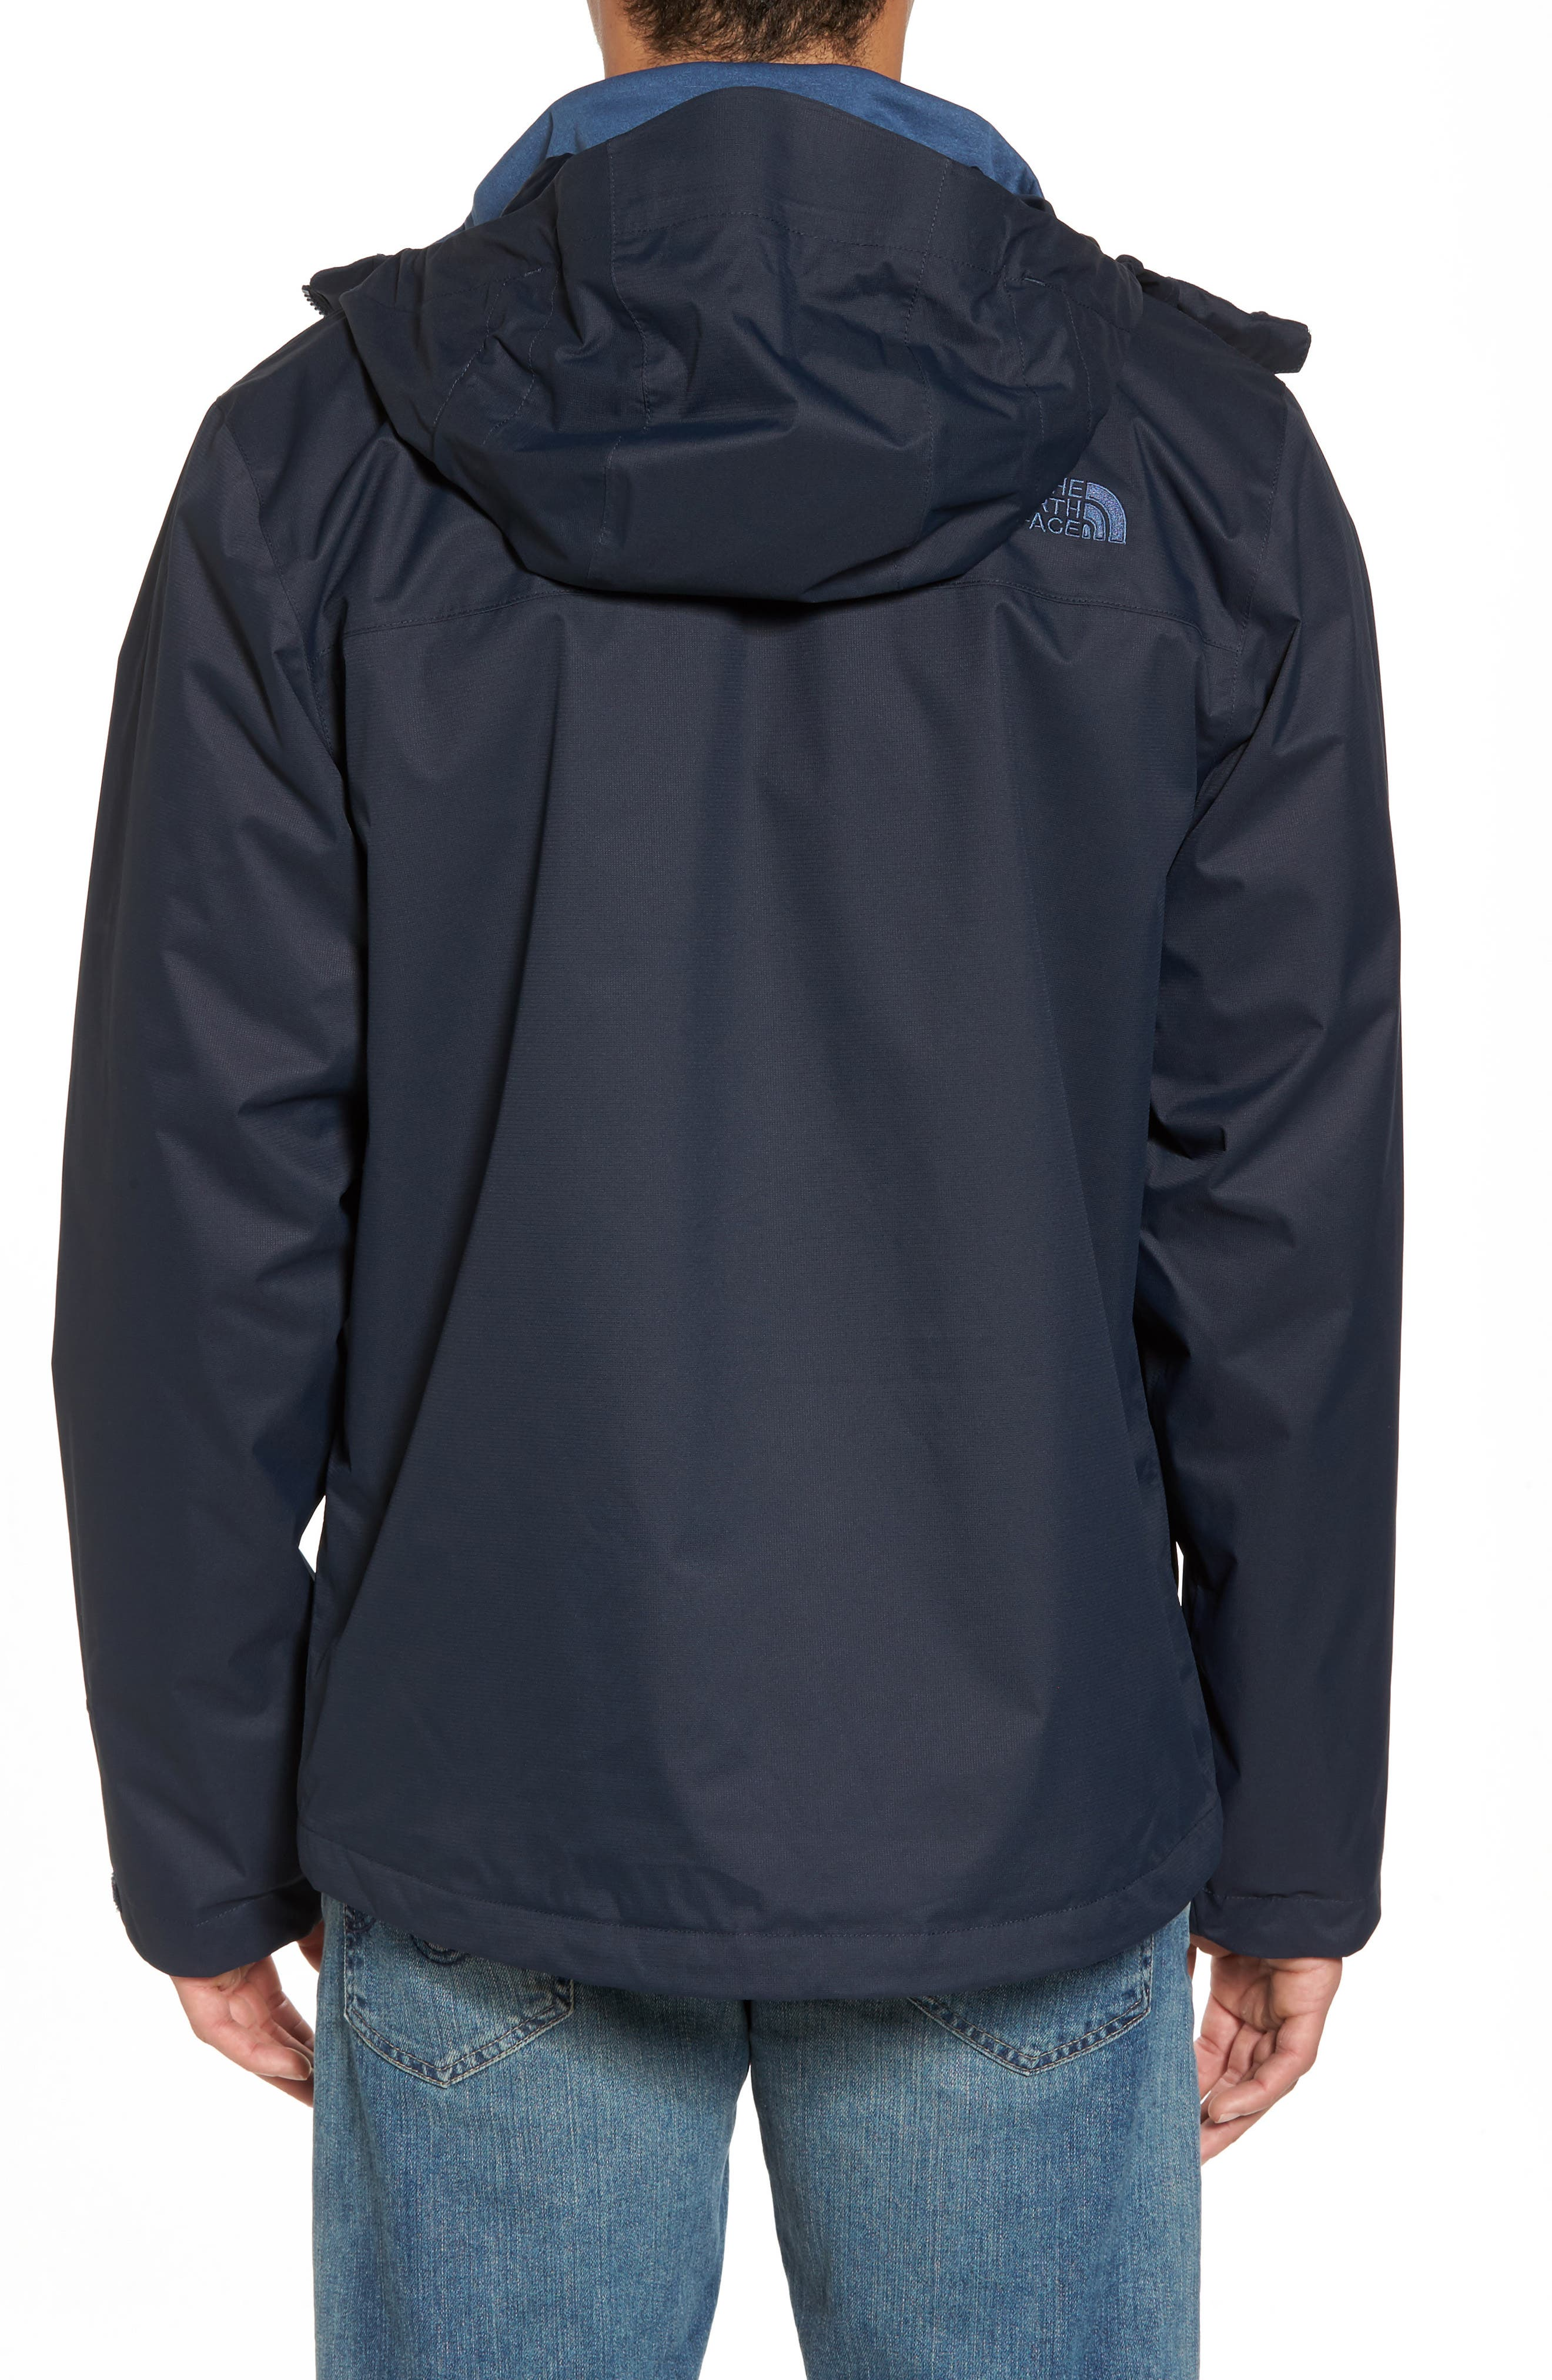 'Arrowood' TriClimate<sup>®</sup> 3-in-1 Jacket,                             Alternate thumbnail 13, color,